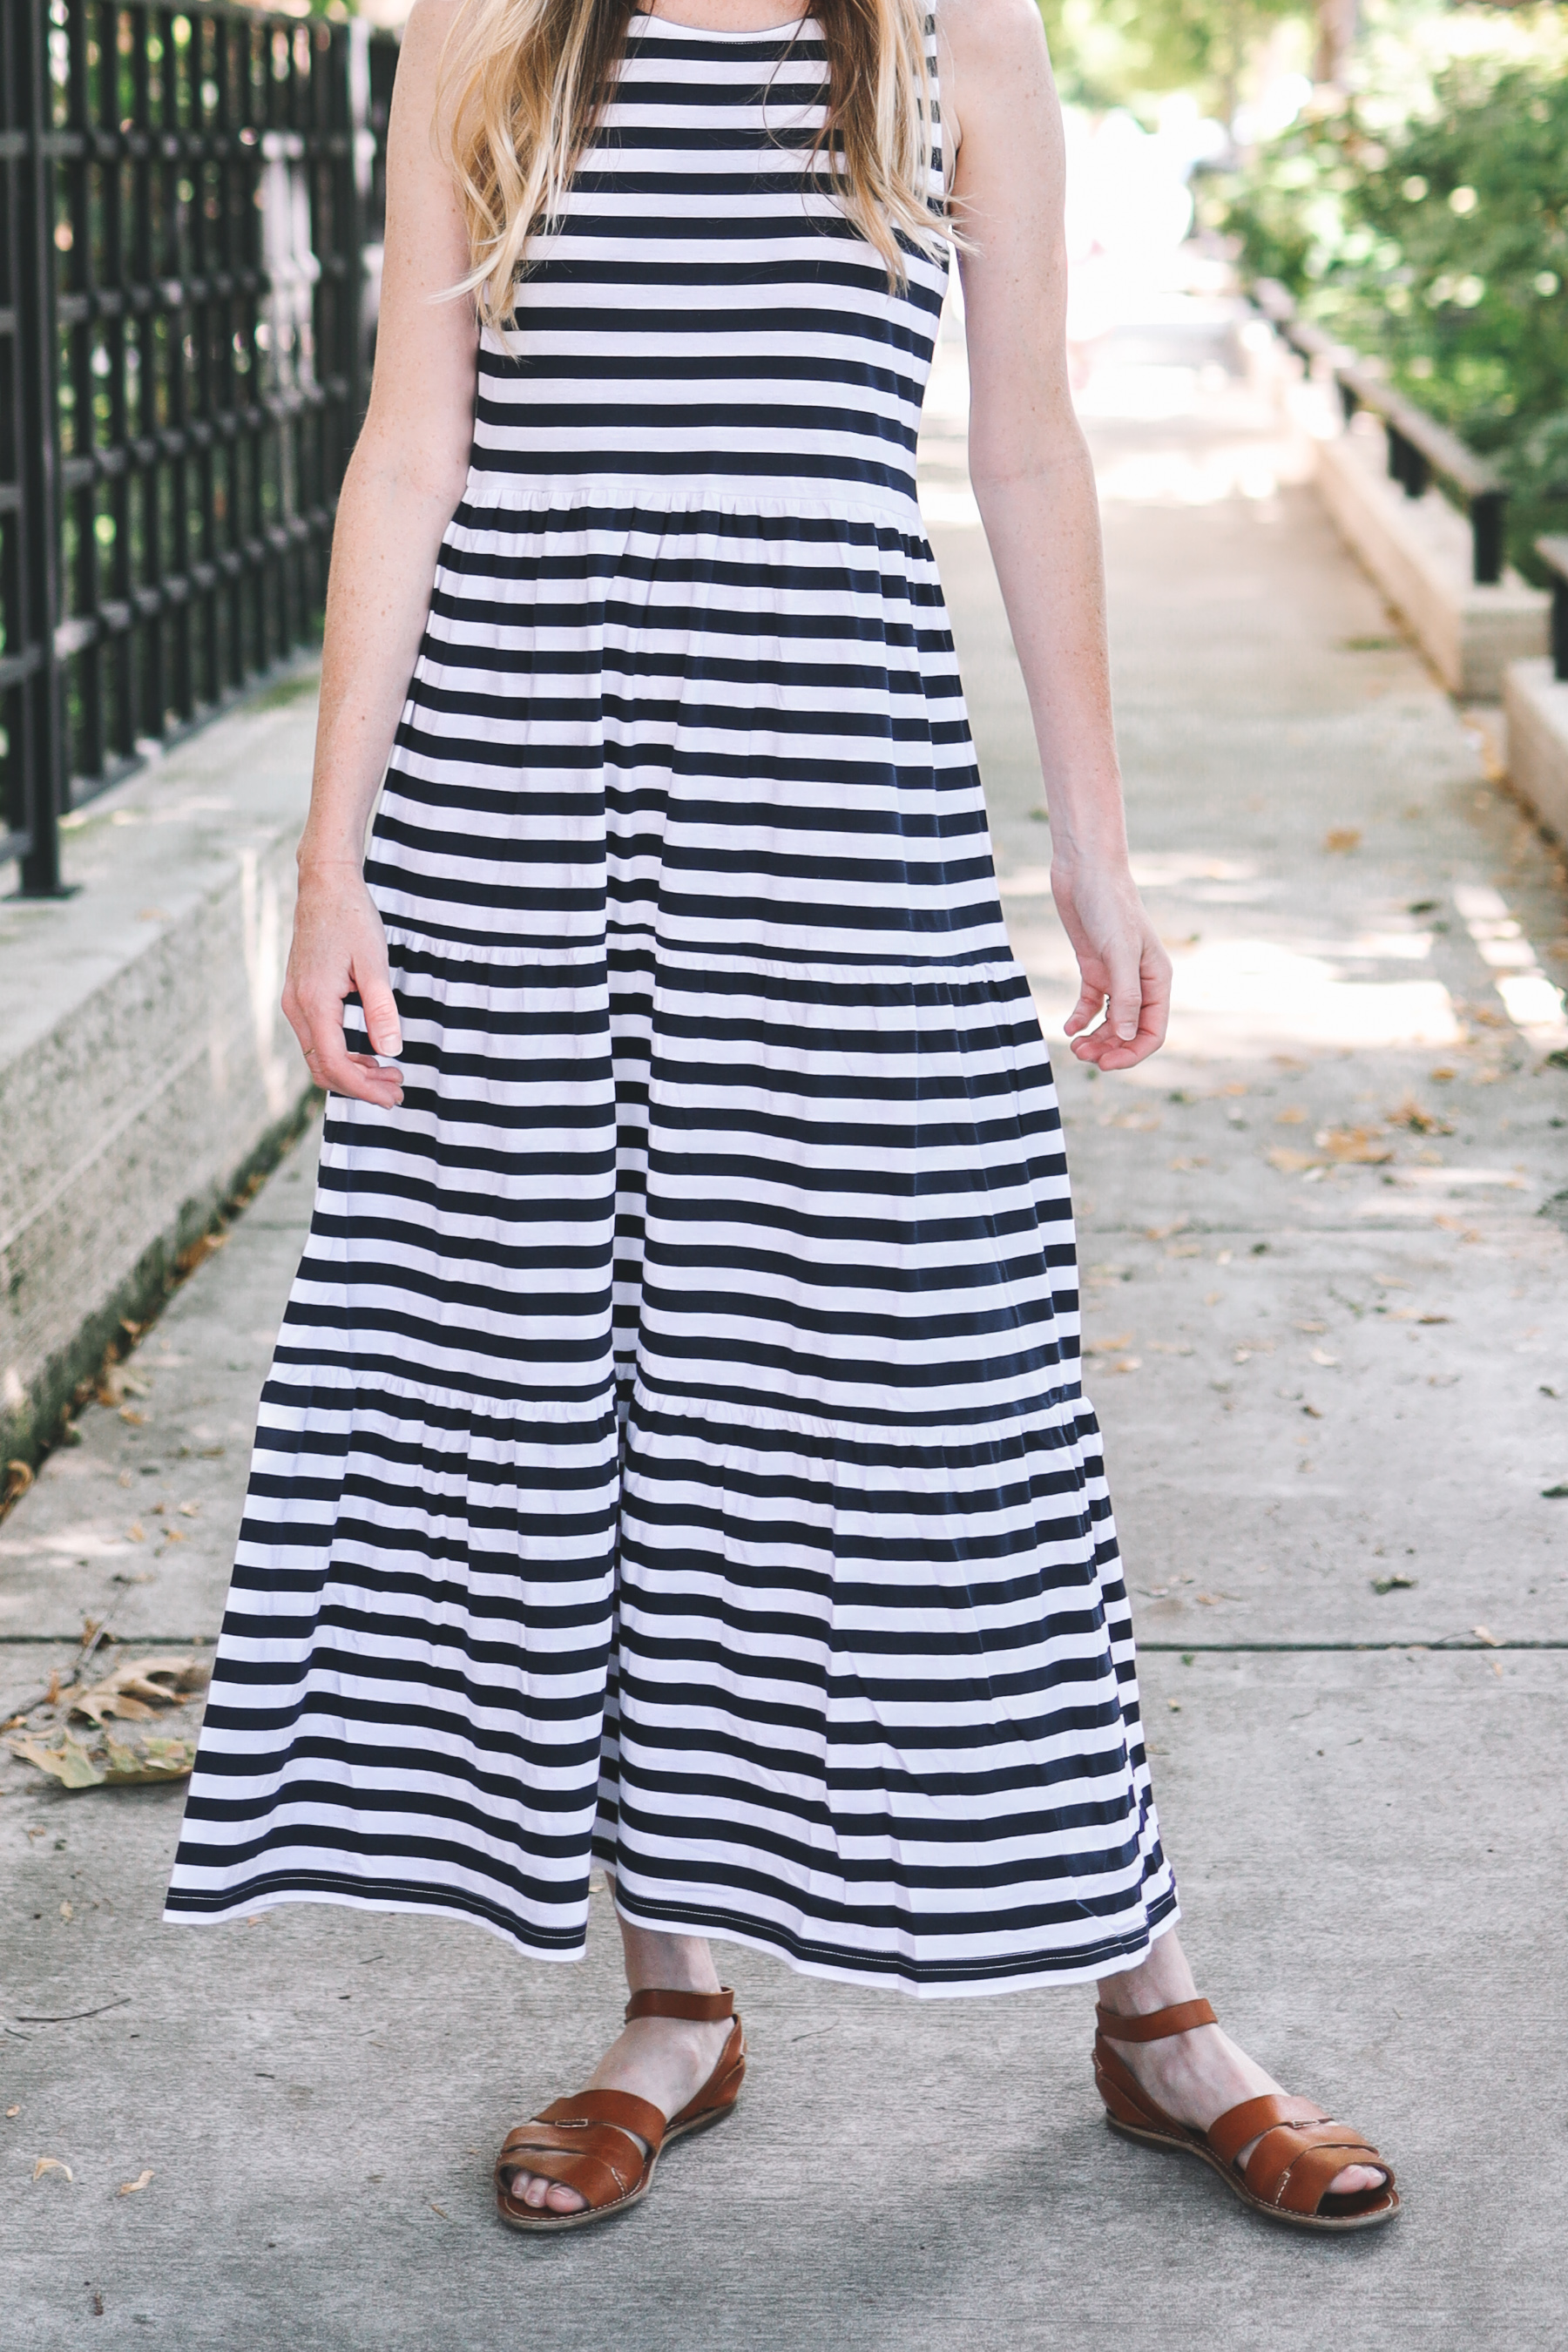 J.Crew Factory summer outfit